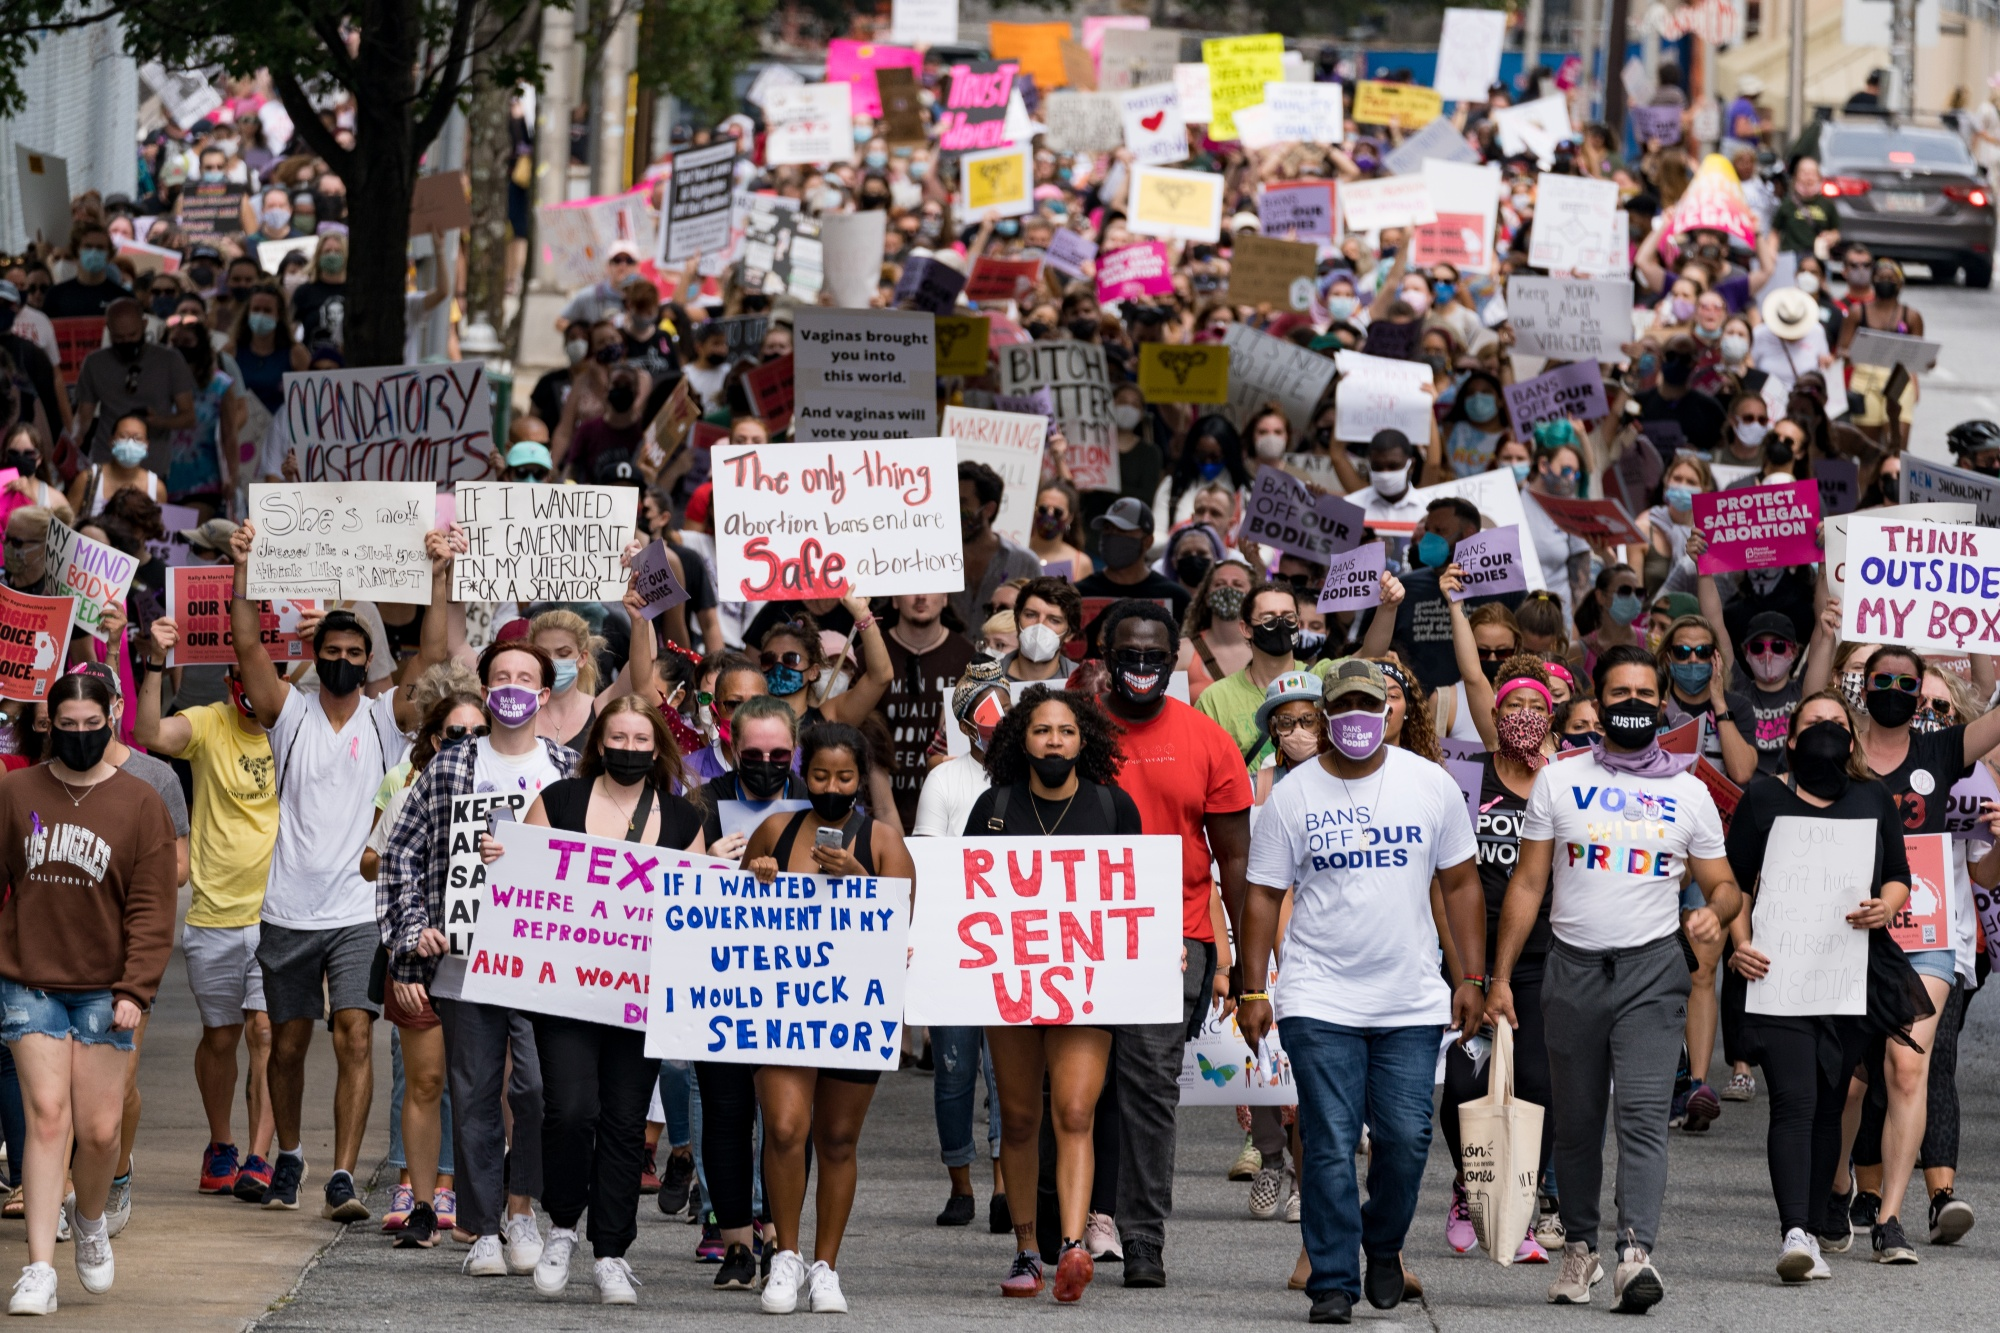 Women's March: Thousands Rally For Abortion Rights Across U.S. Cities